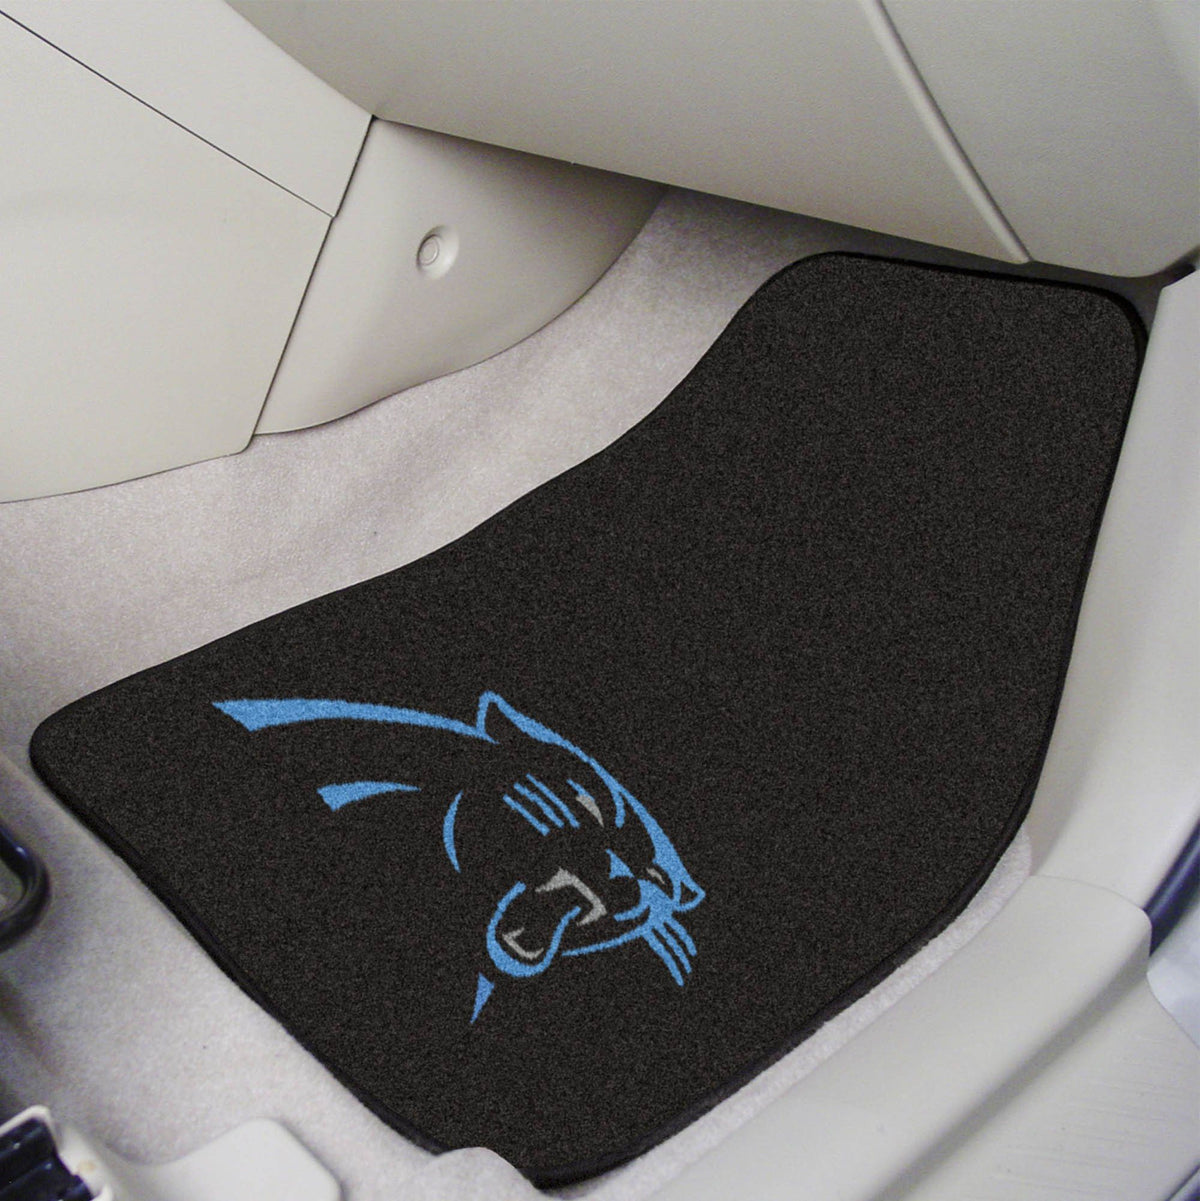 "NFL - 2-pc Carpet Car Mat Set, 17"" x 27"" NFL Mats, Front Car Mats, 2-pc Carpet Car Mat Set, NFL, Auto Fan Mats Carolina Panthers"